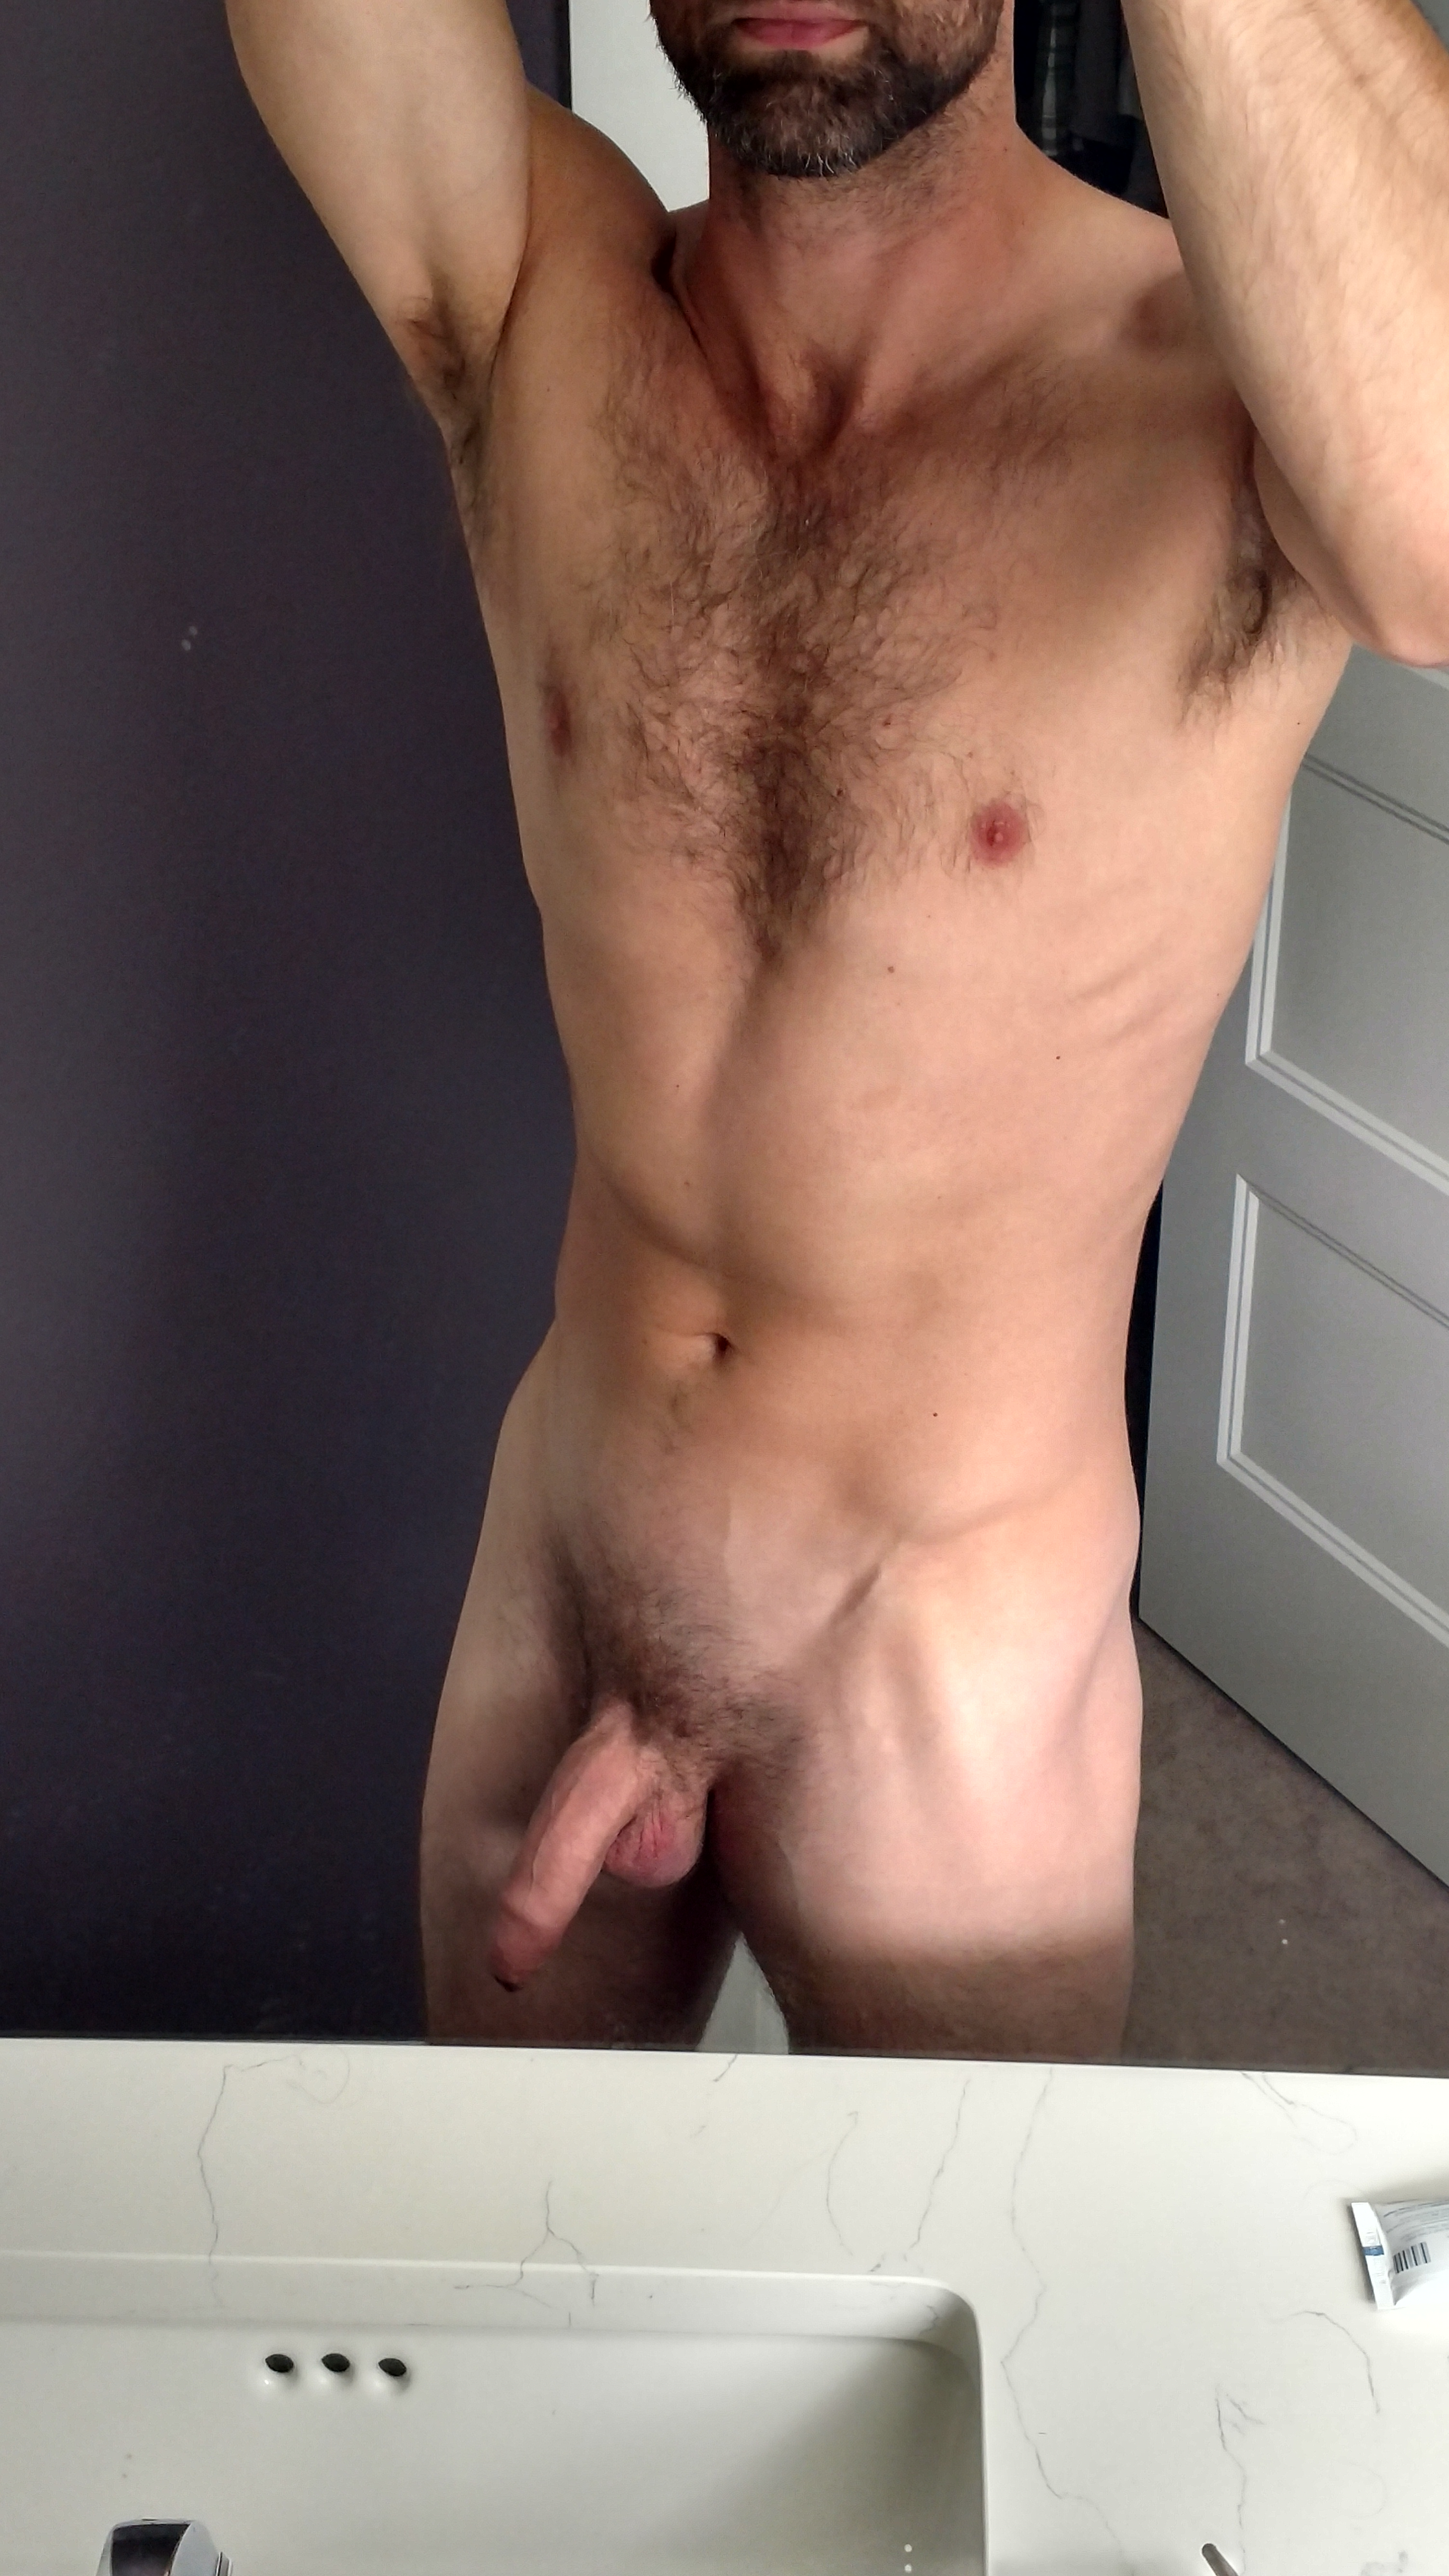 Full body naked pictures